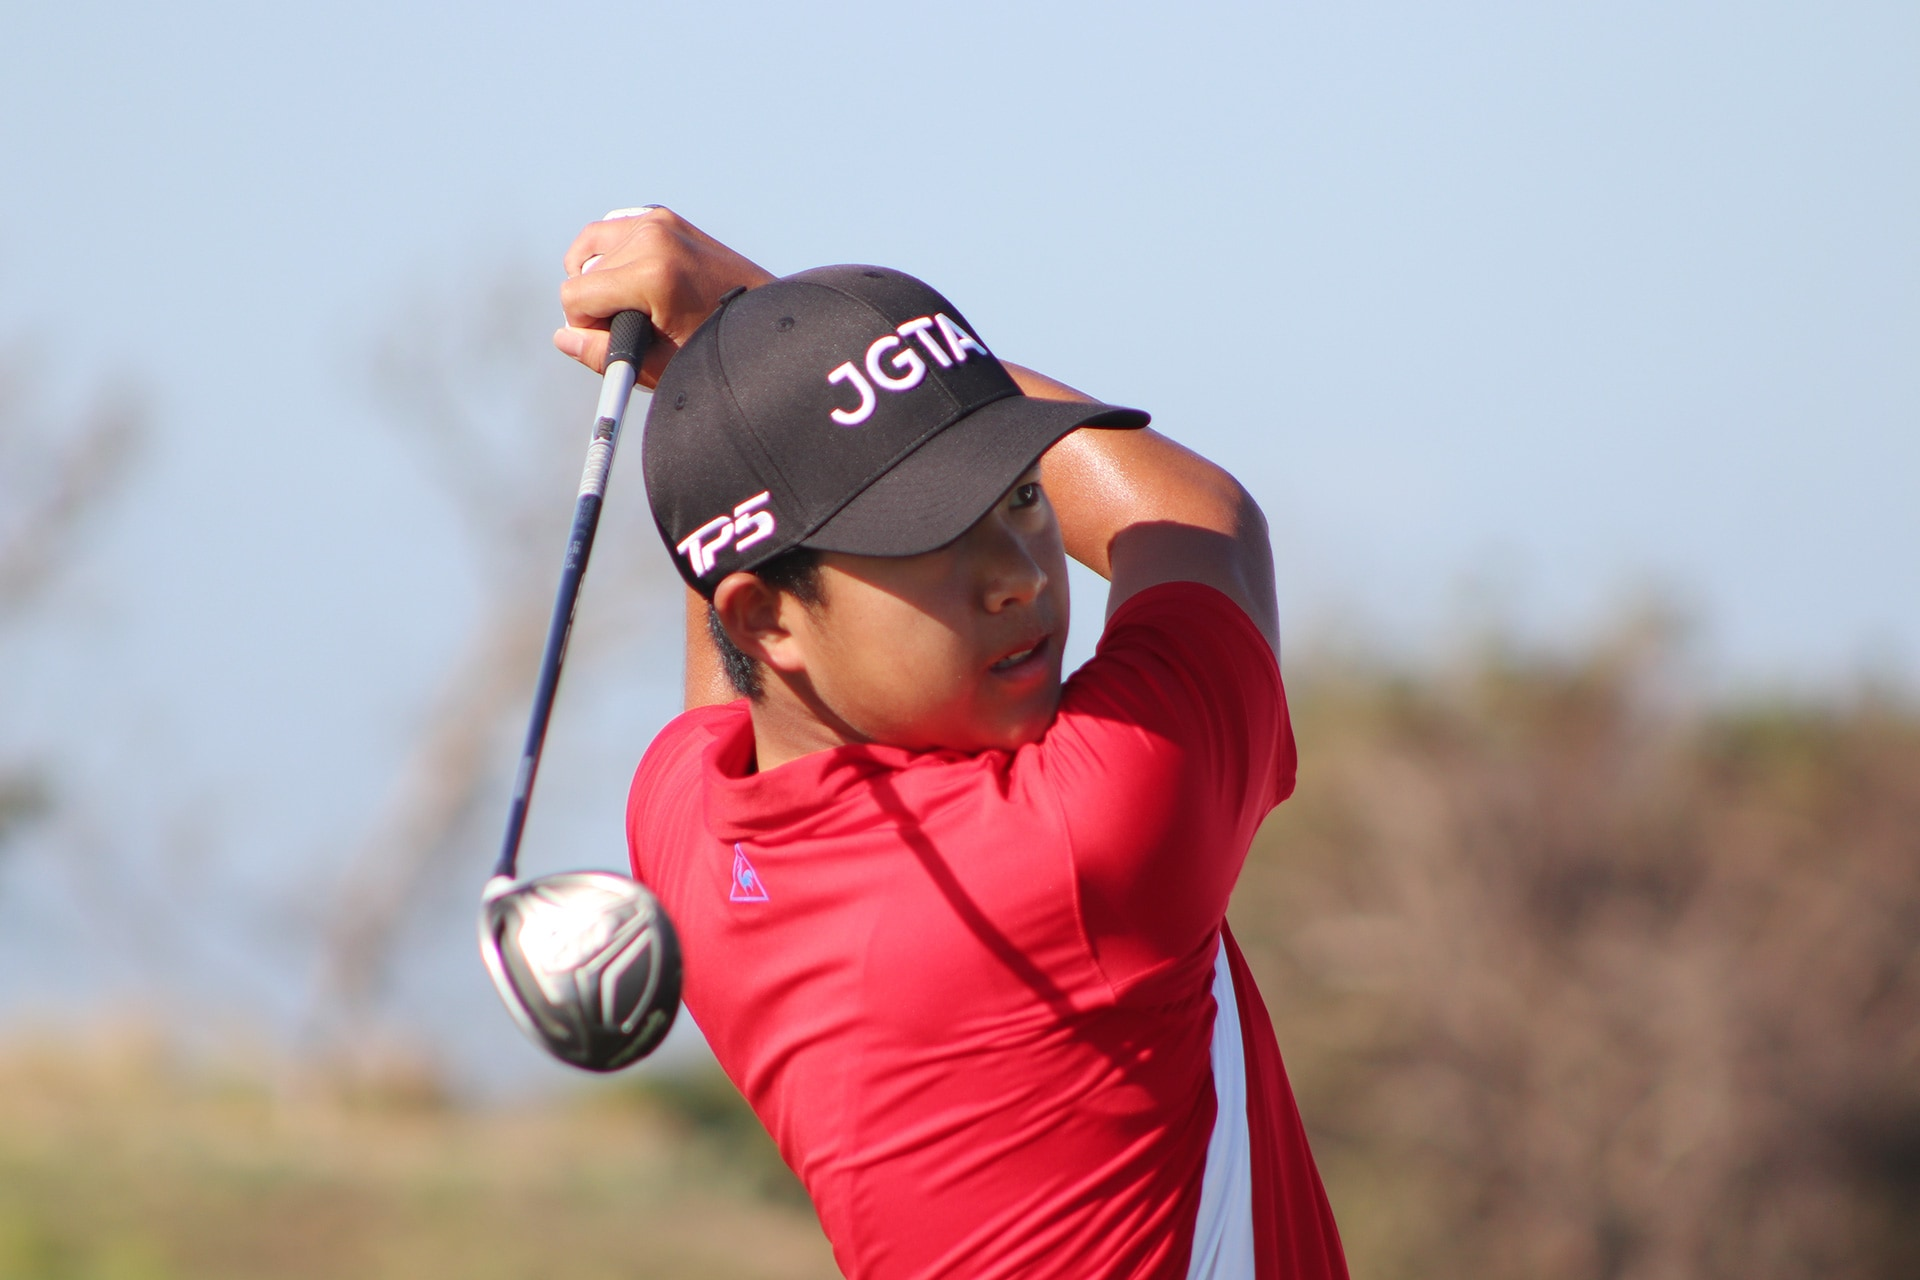 Markus Lam, First Team Junior All-Asia, First Tee Swing at the Junior Aspirations at The Bluffs